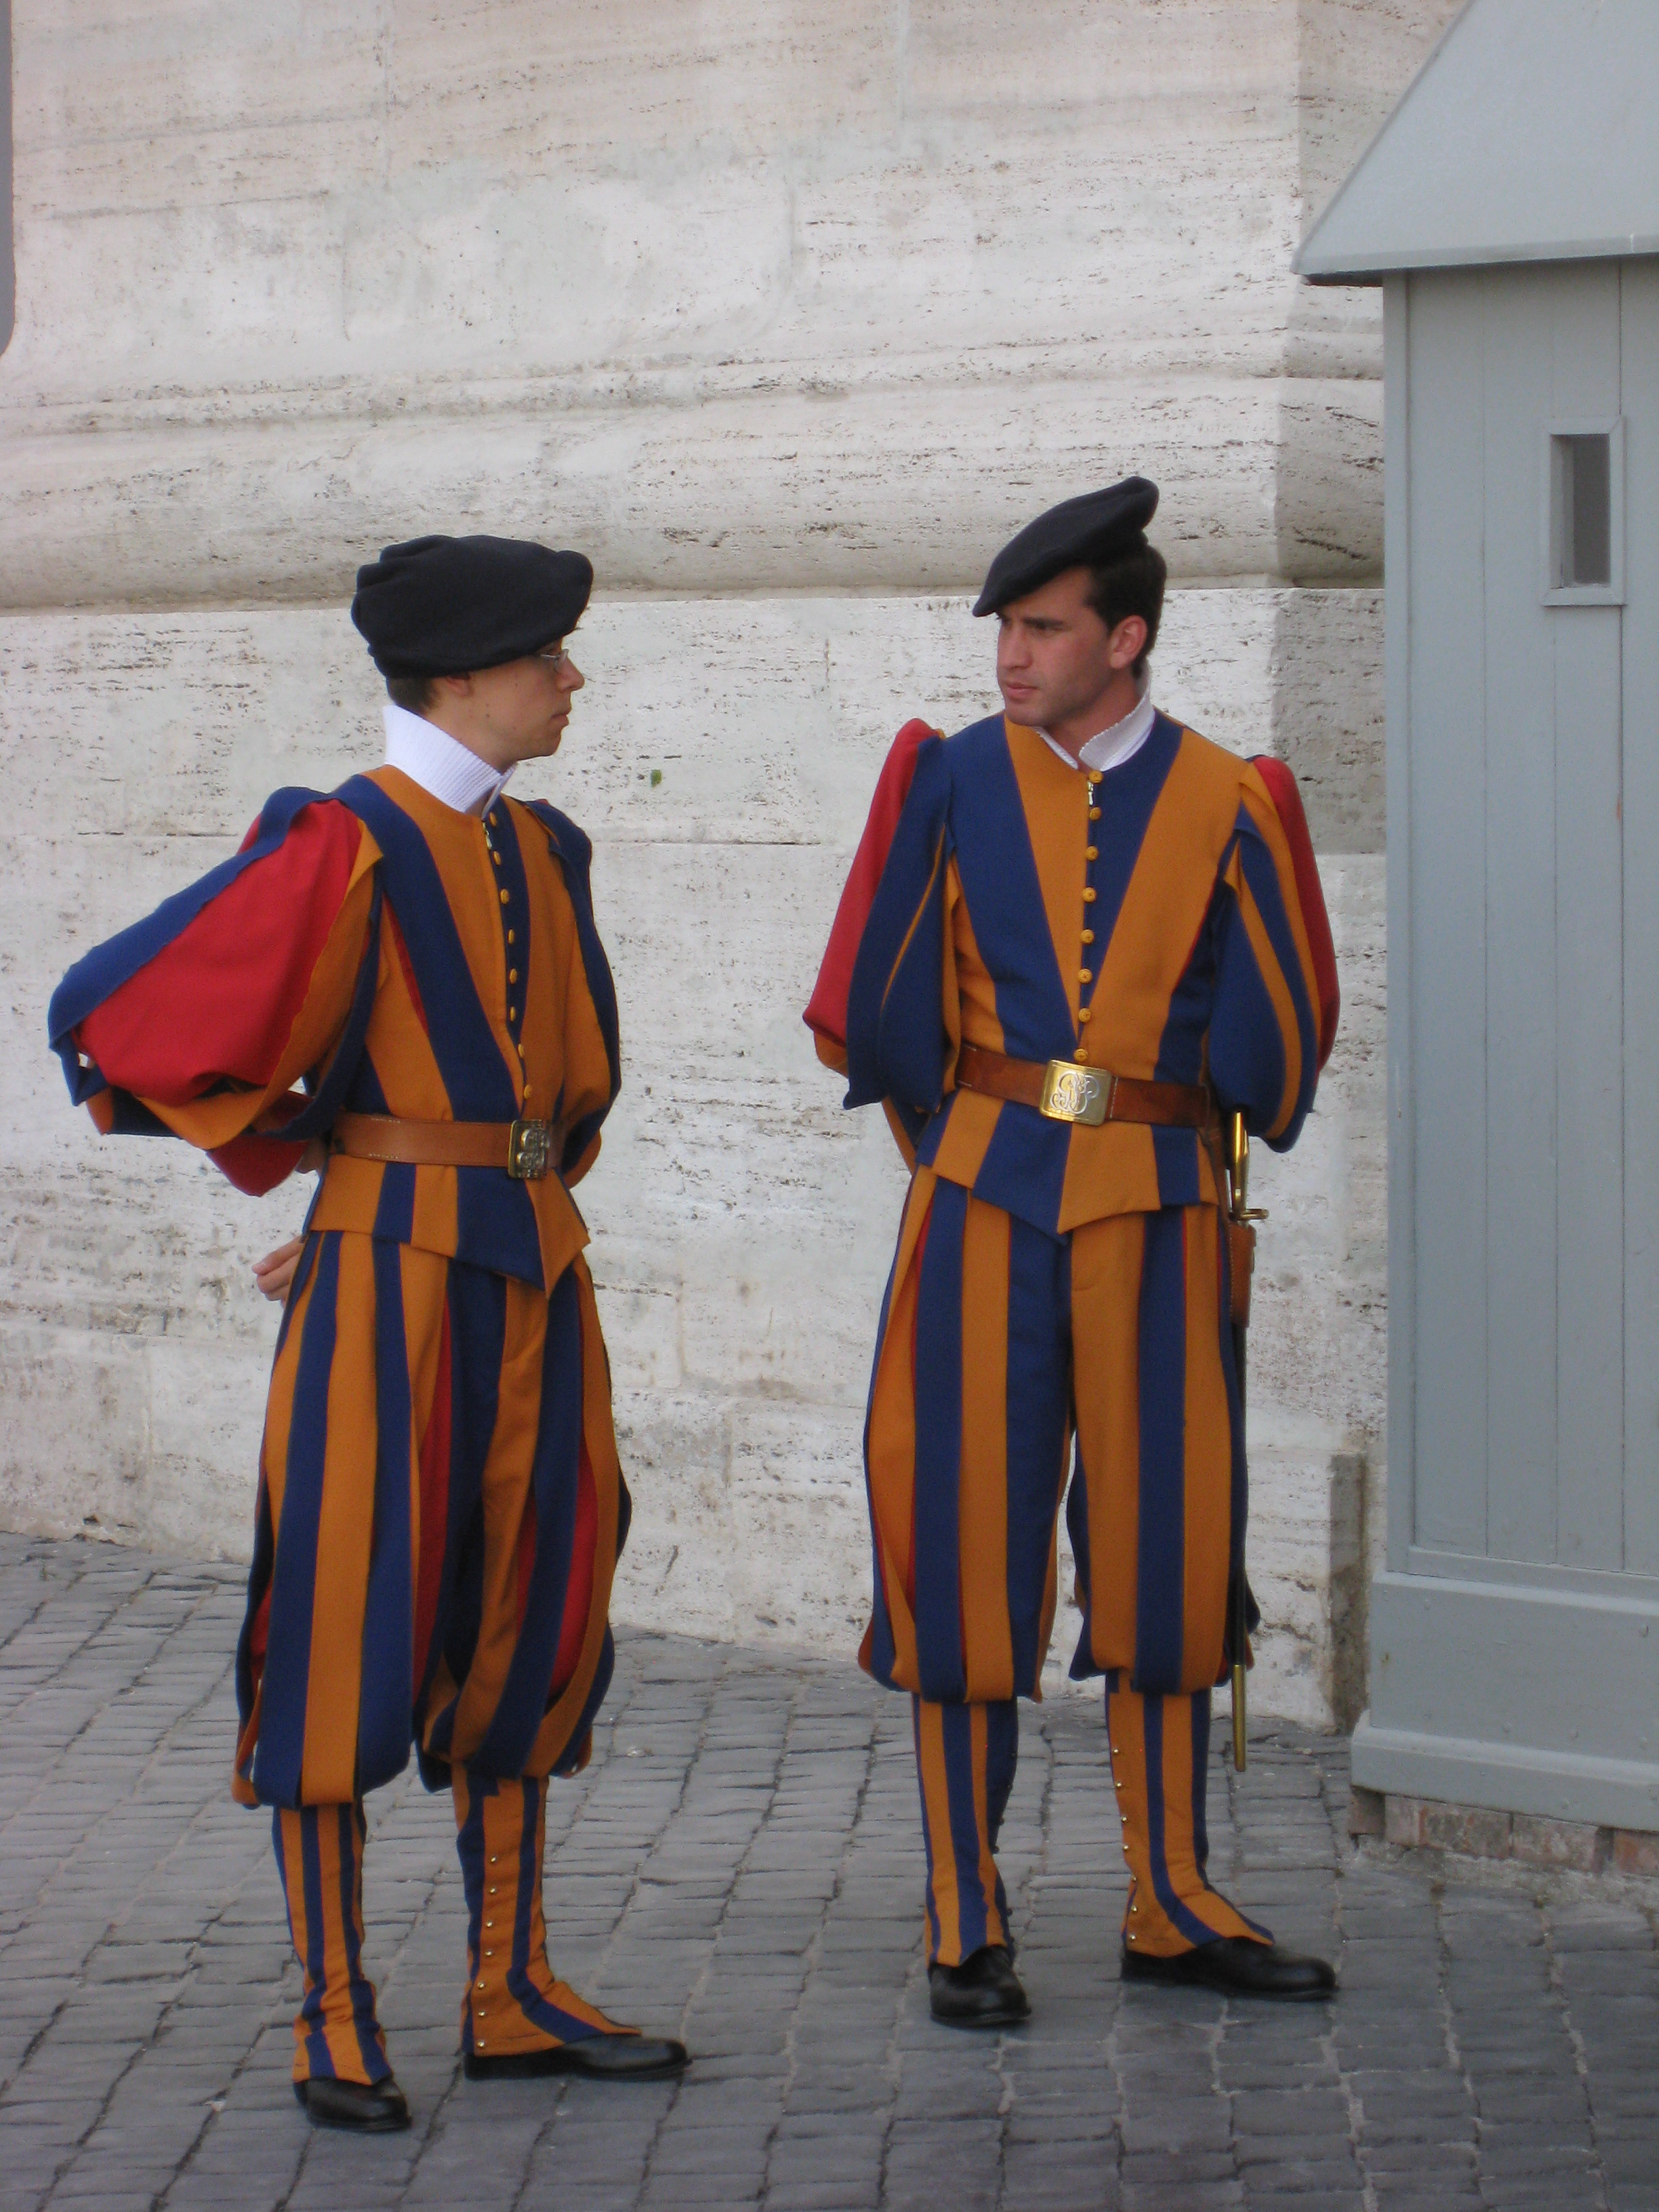 Guards at St. Peters Church in Italy